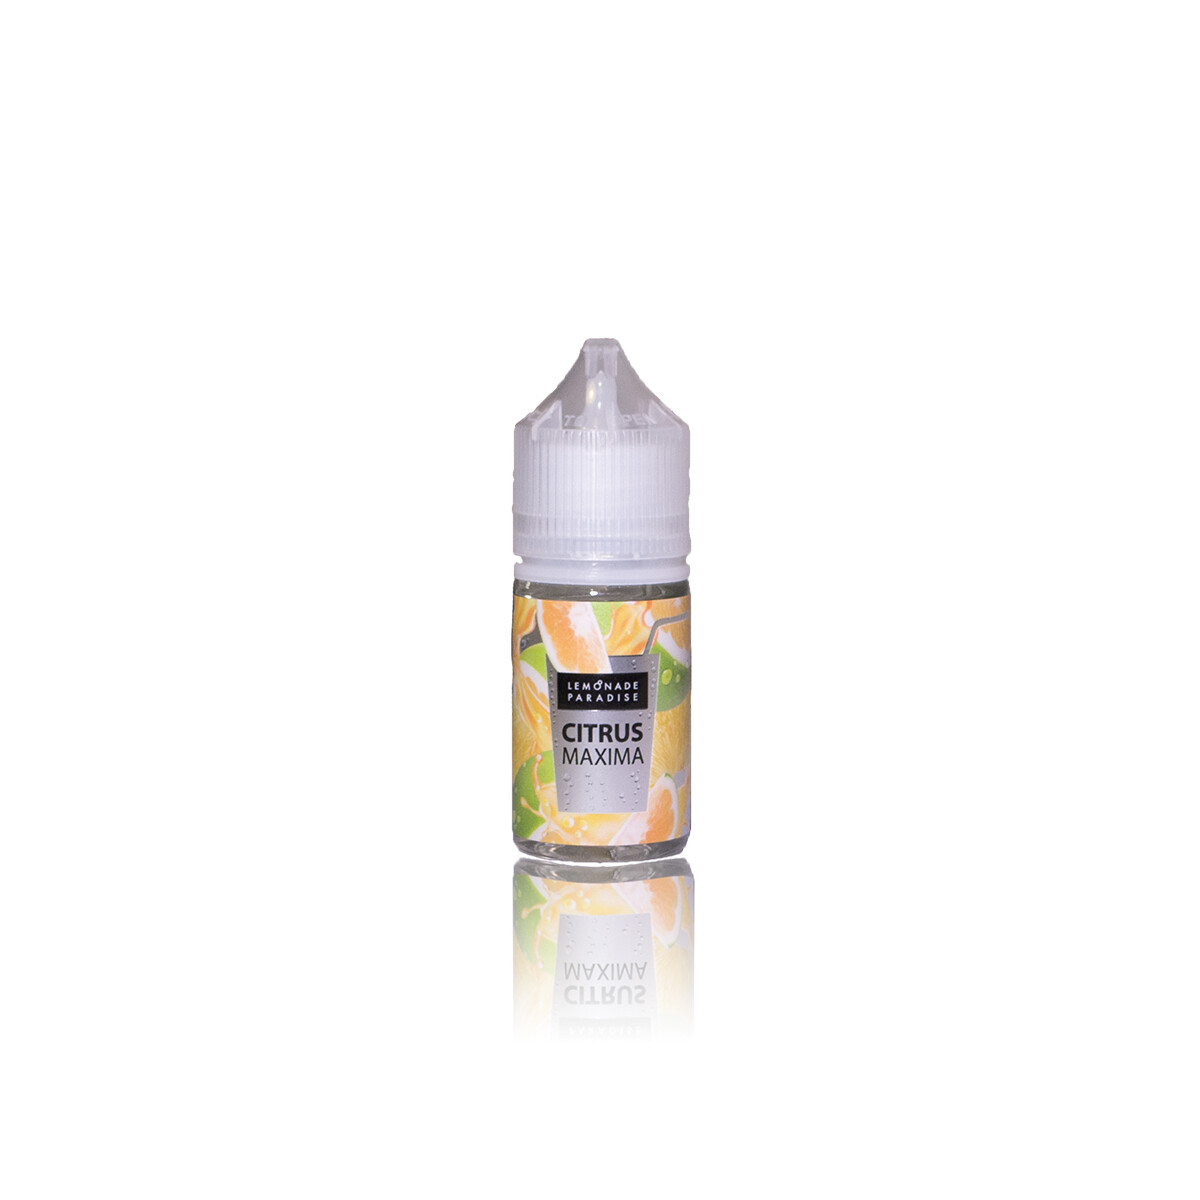 LEMONADE PARADISE SALT: CITRUS MAXIMA 30ML 45MG